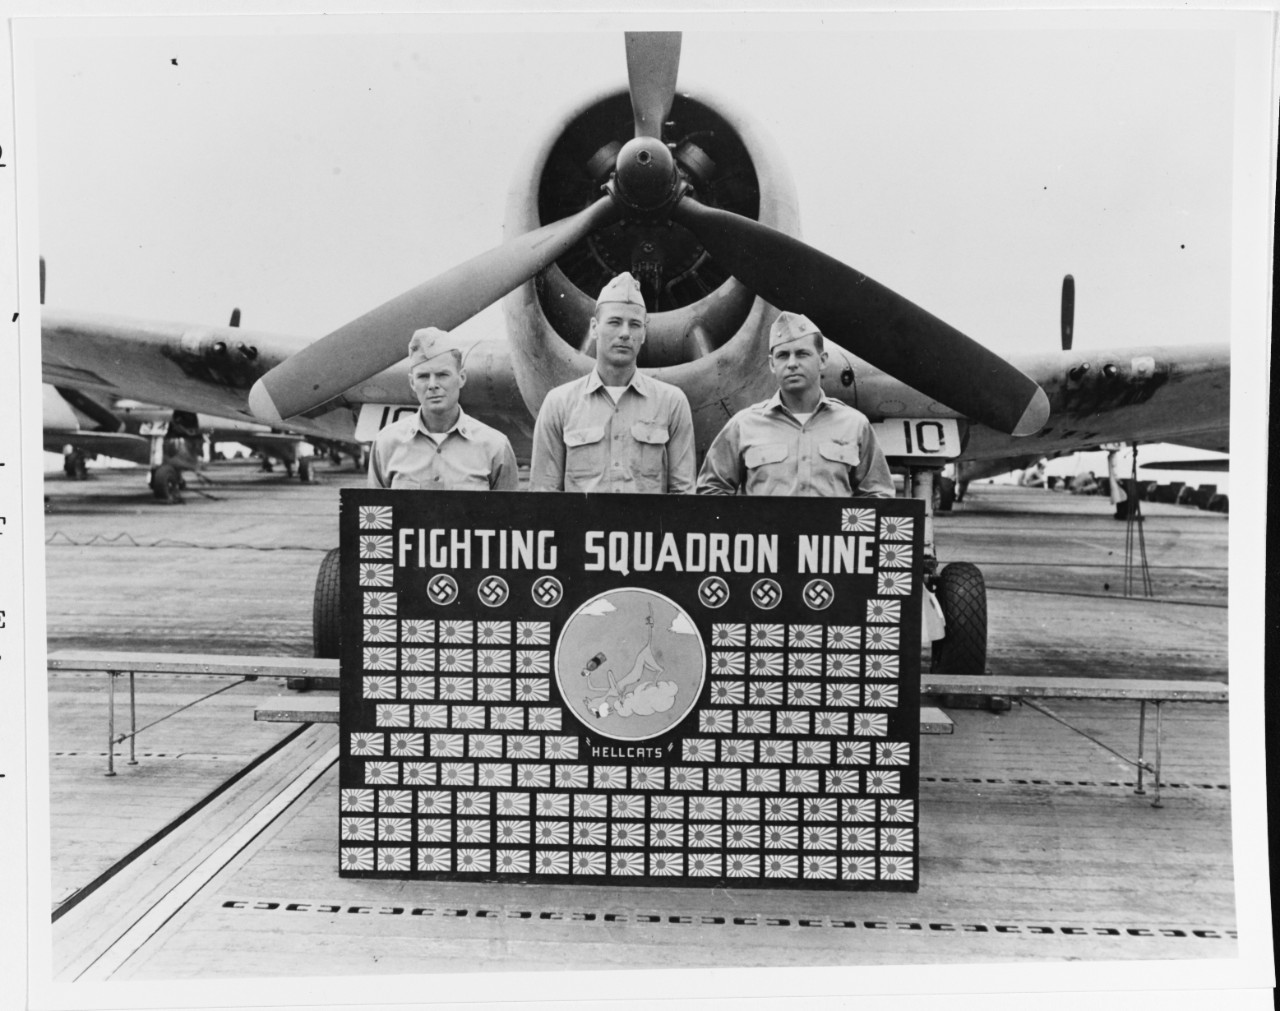 Fighting Squadron Nine (VF-9)